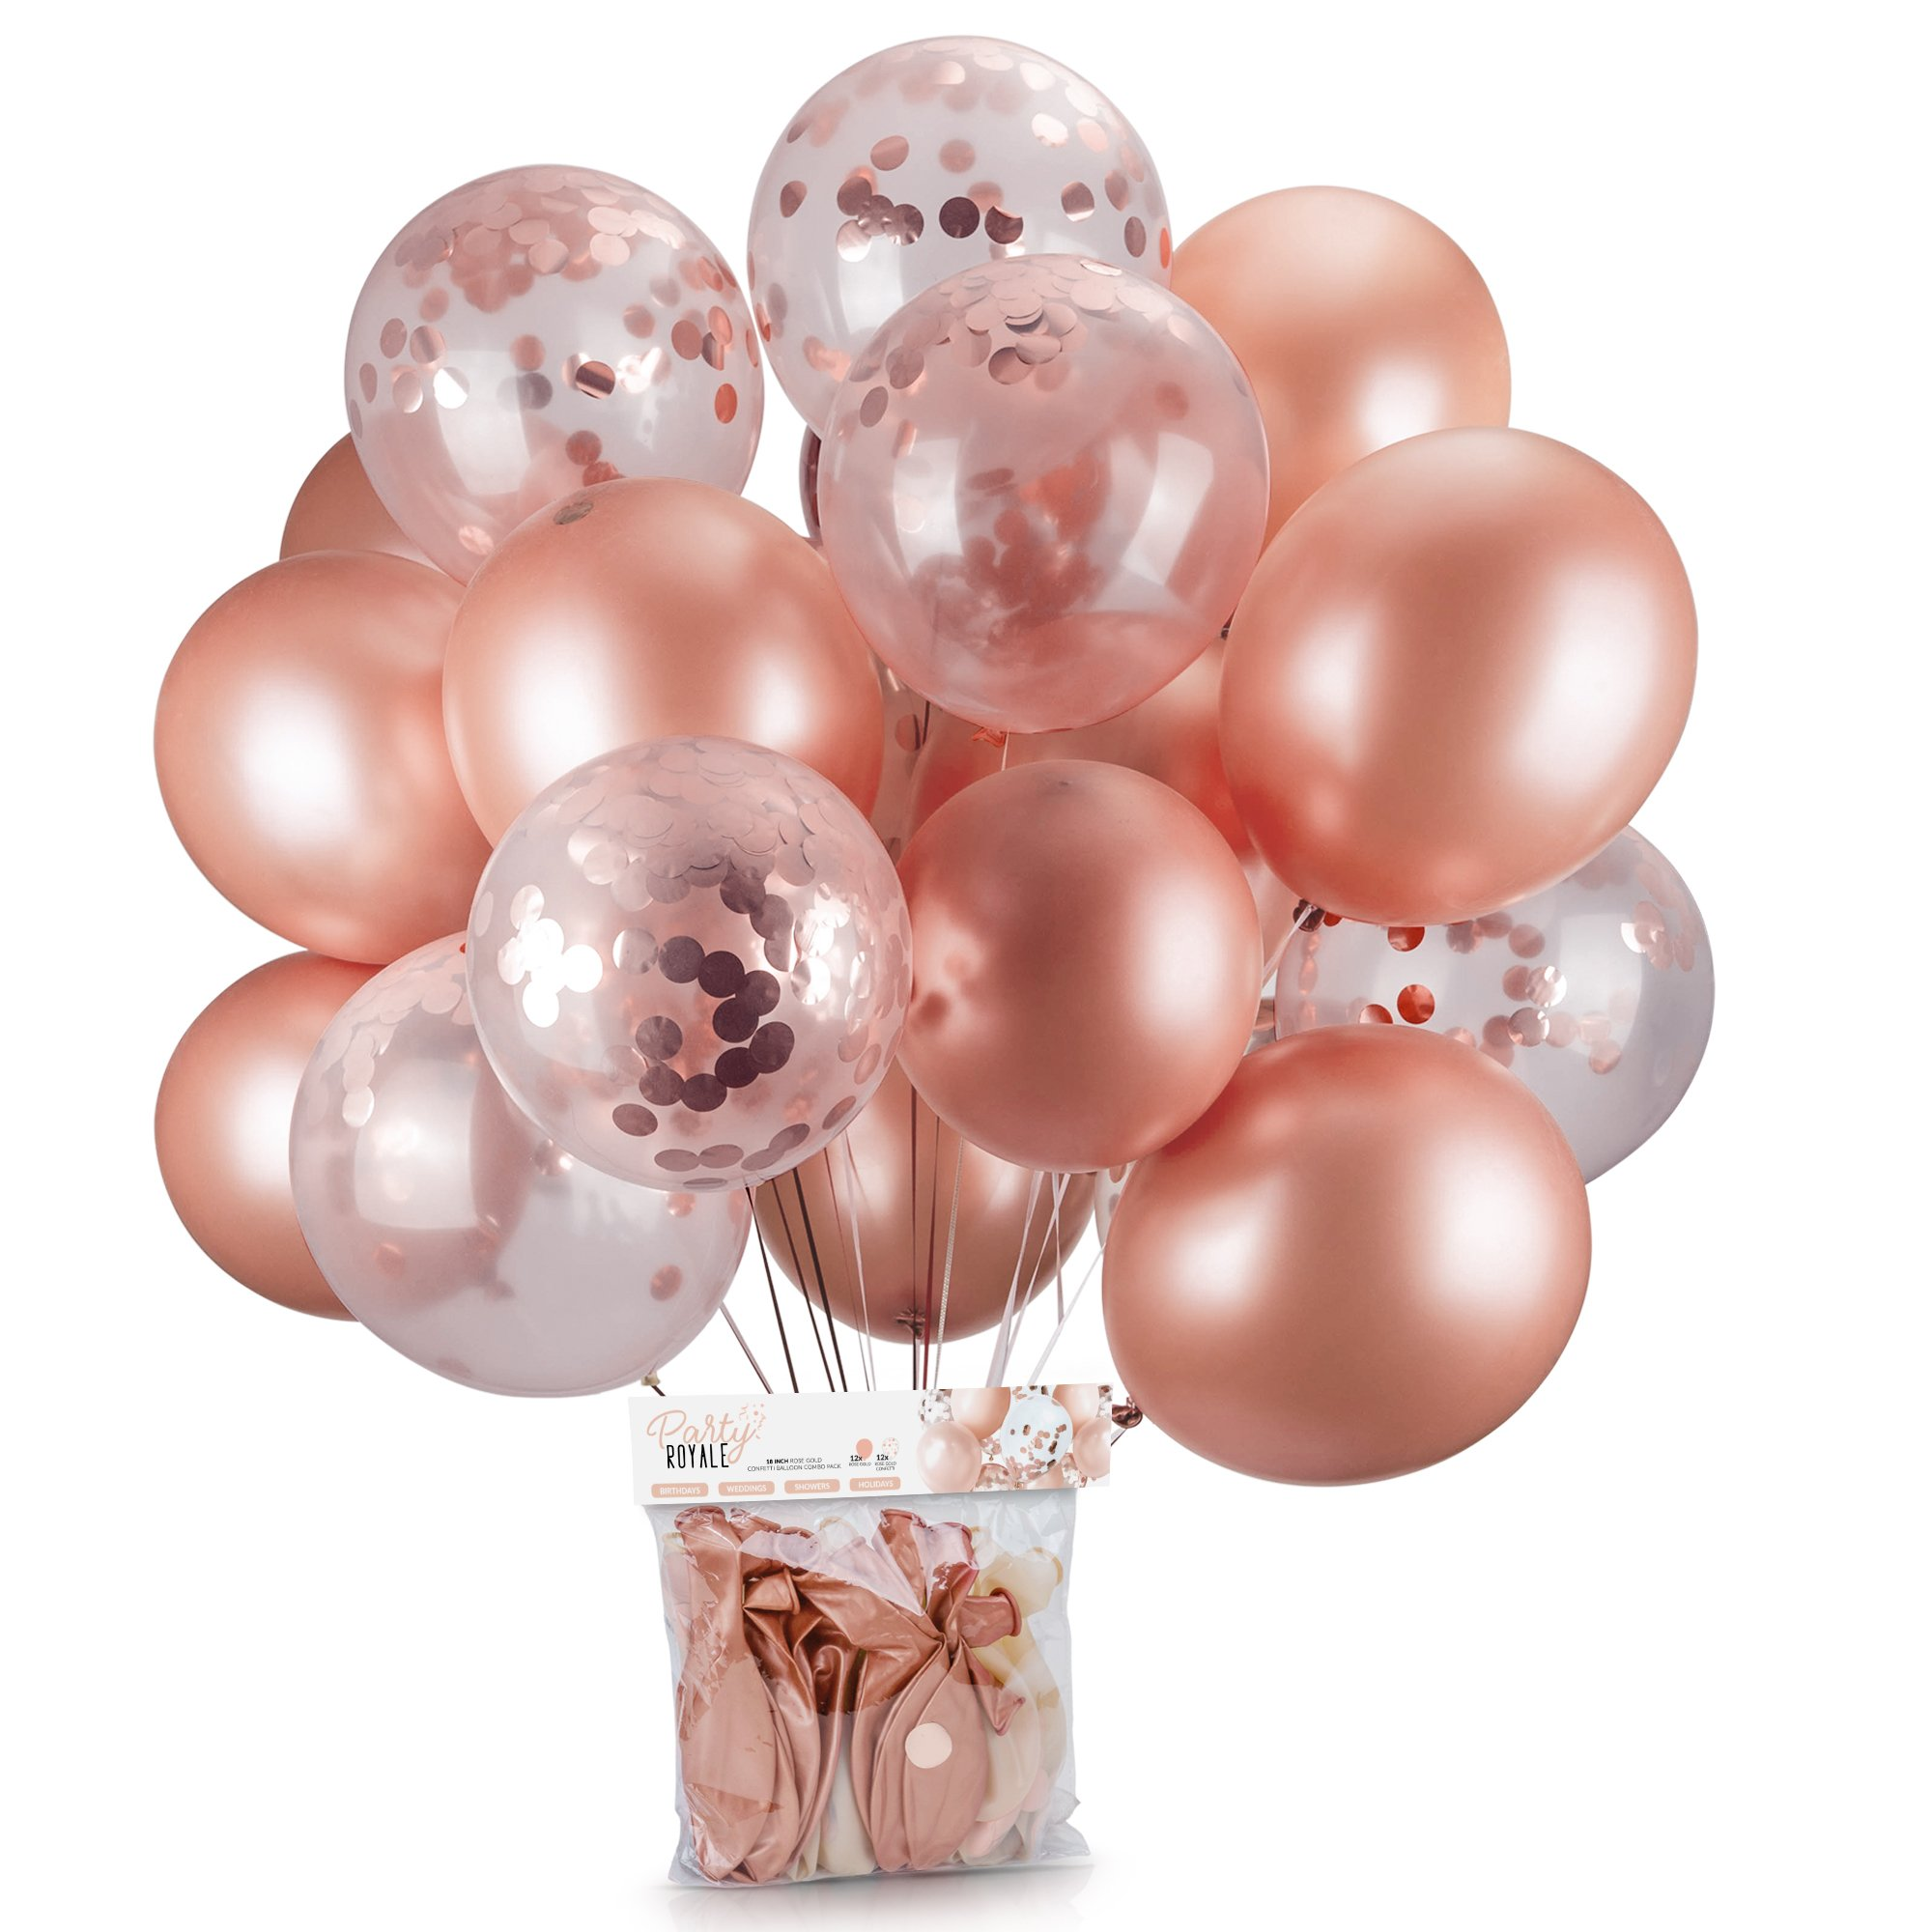 Rose Gold Confetti Balloons Pack of 24 | 18 Inch Pre-Filled Latex Metallic Balloons Great for Rose Gold Party Decorations, Bridal Shower Balloons, Birthday Party, Wedding, Engagement Party, Prom